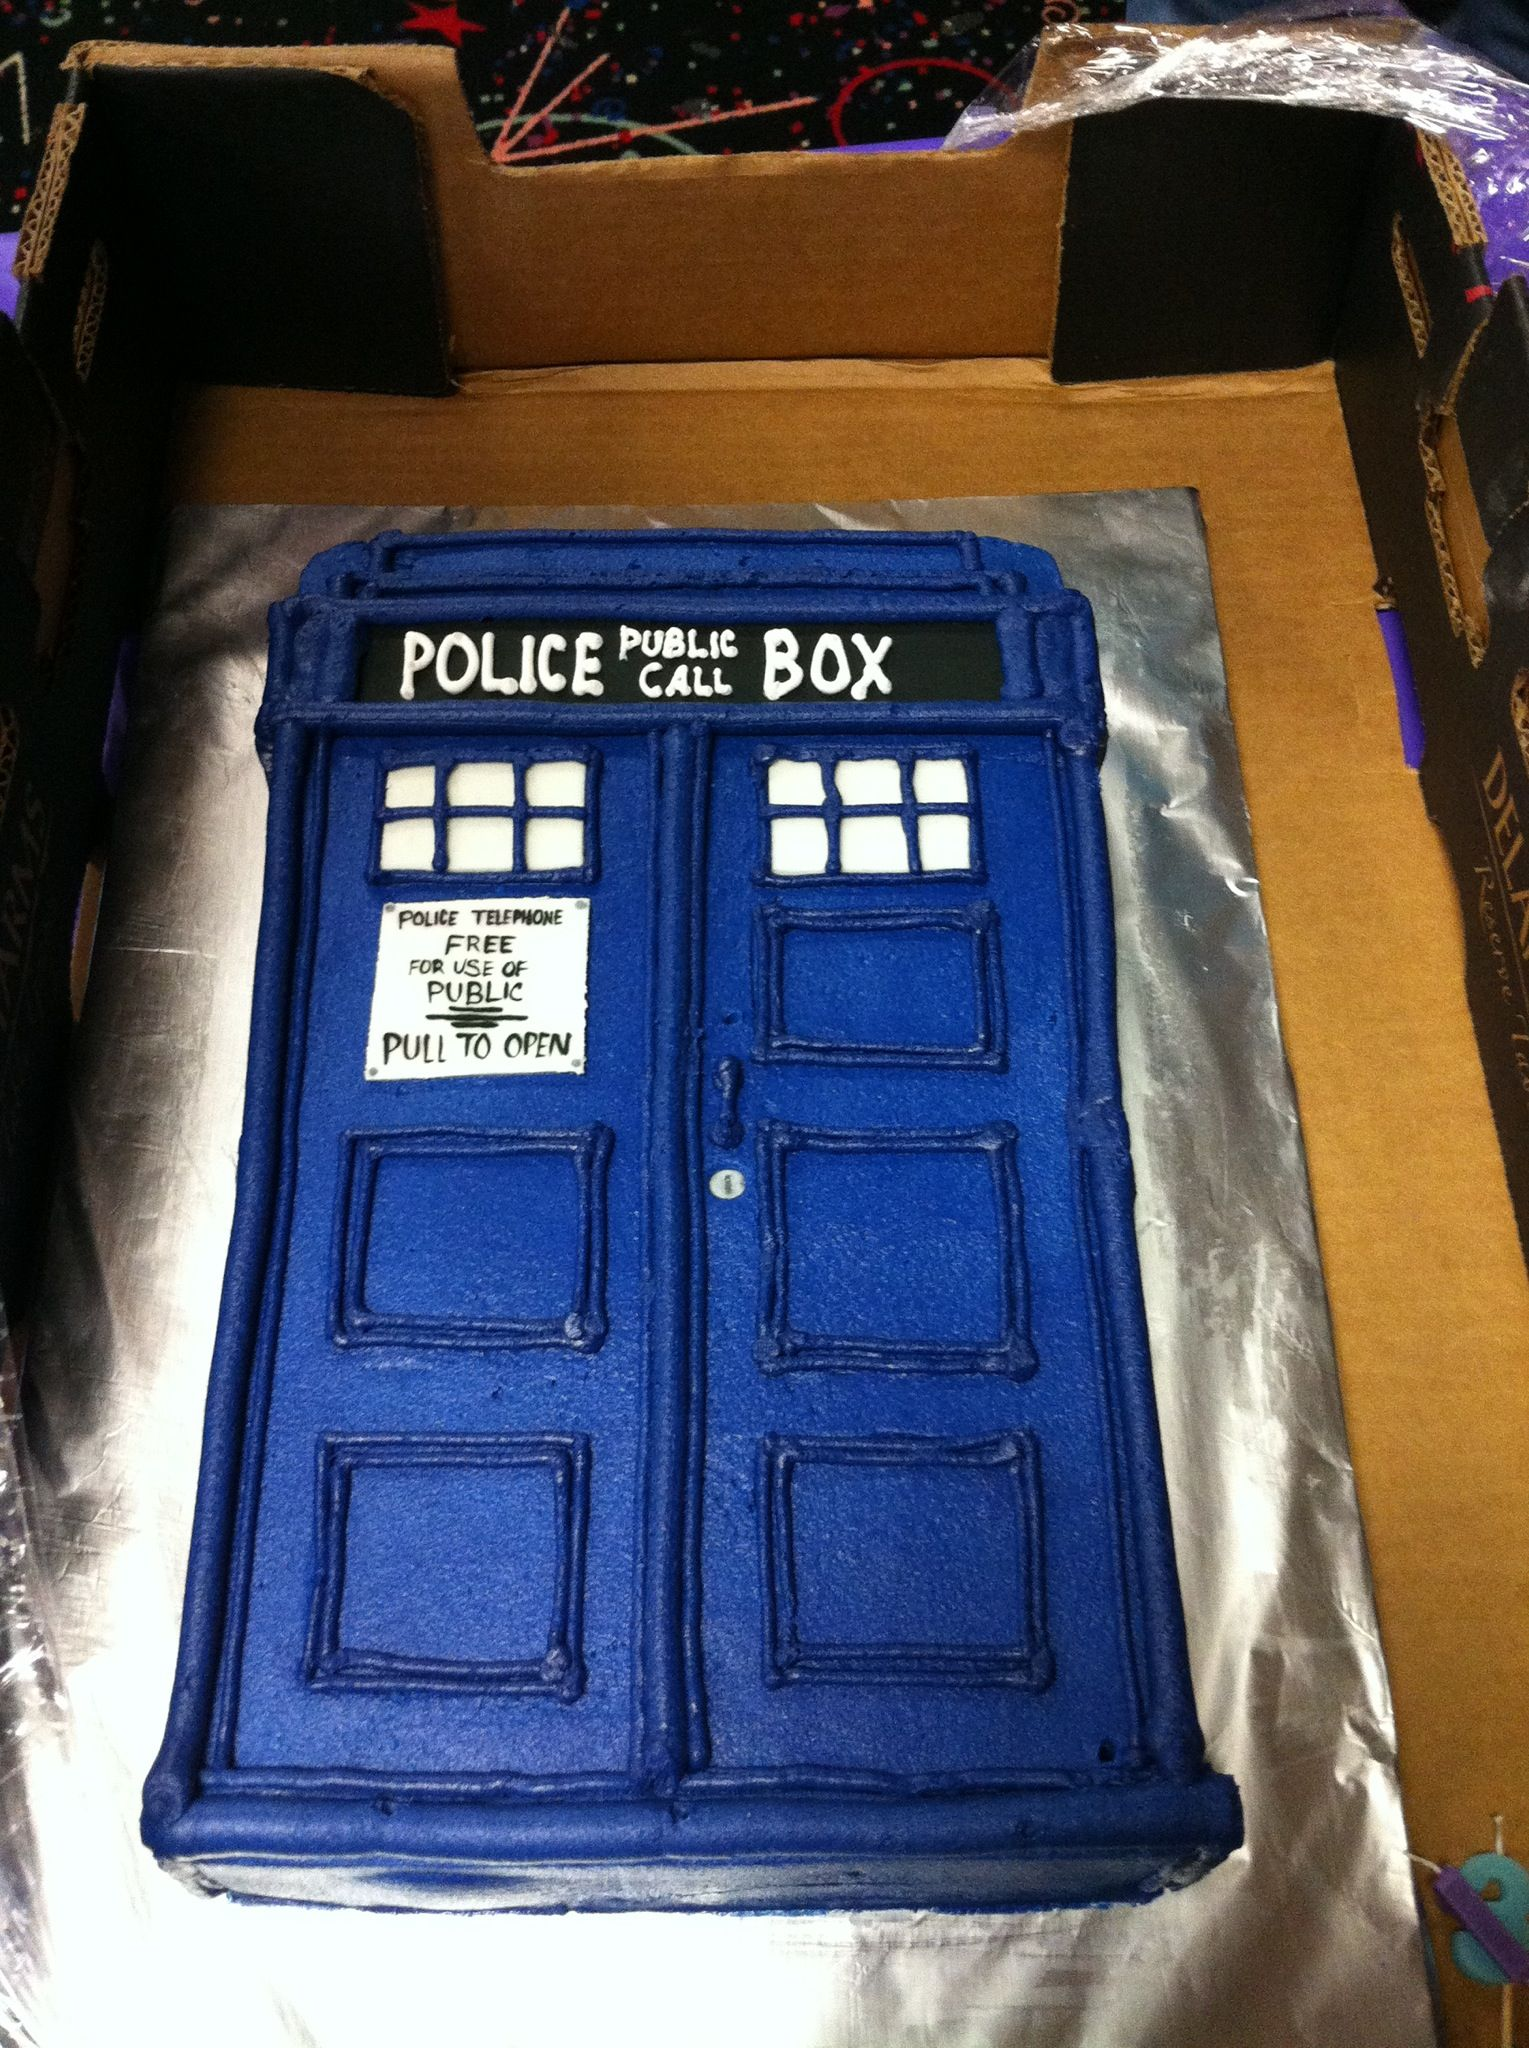 Doctor Who Tardis Cake Totally Want This For My Birthday Someday